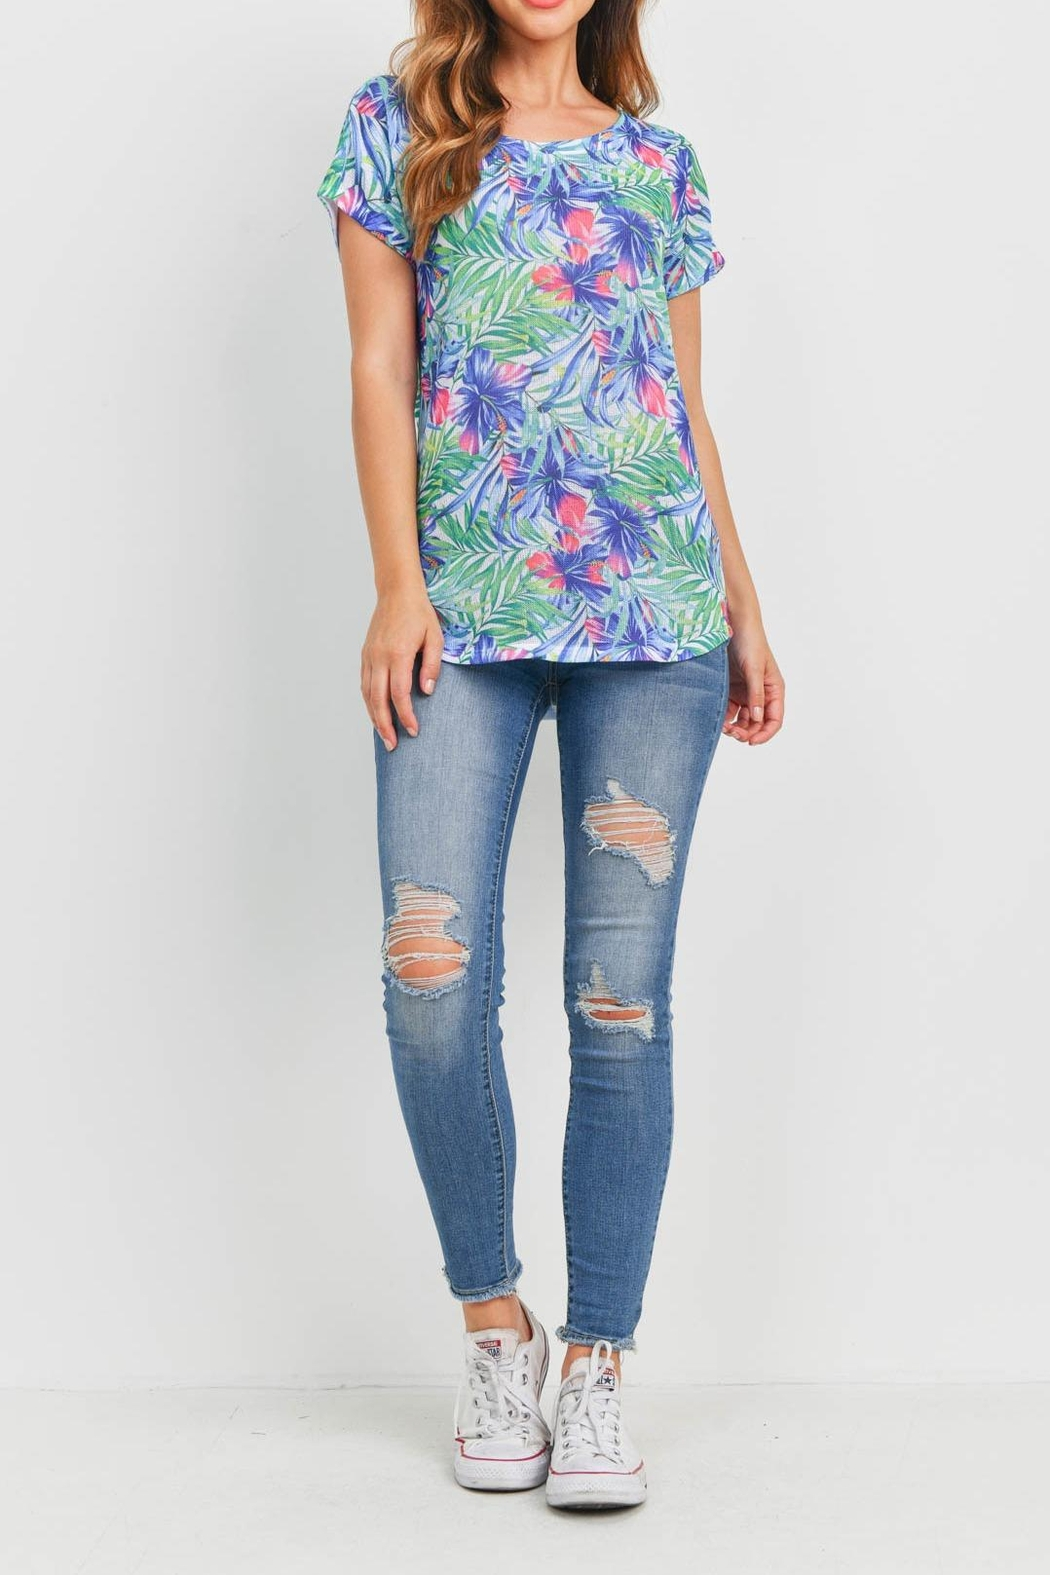 Riah Fashion Blue Green Floral - Side Cropped Image